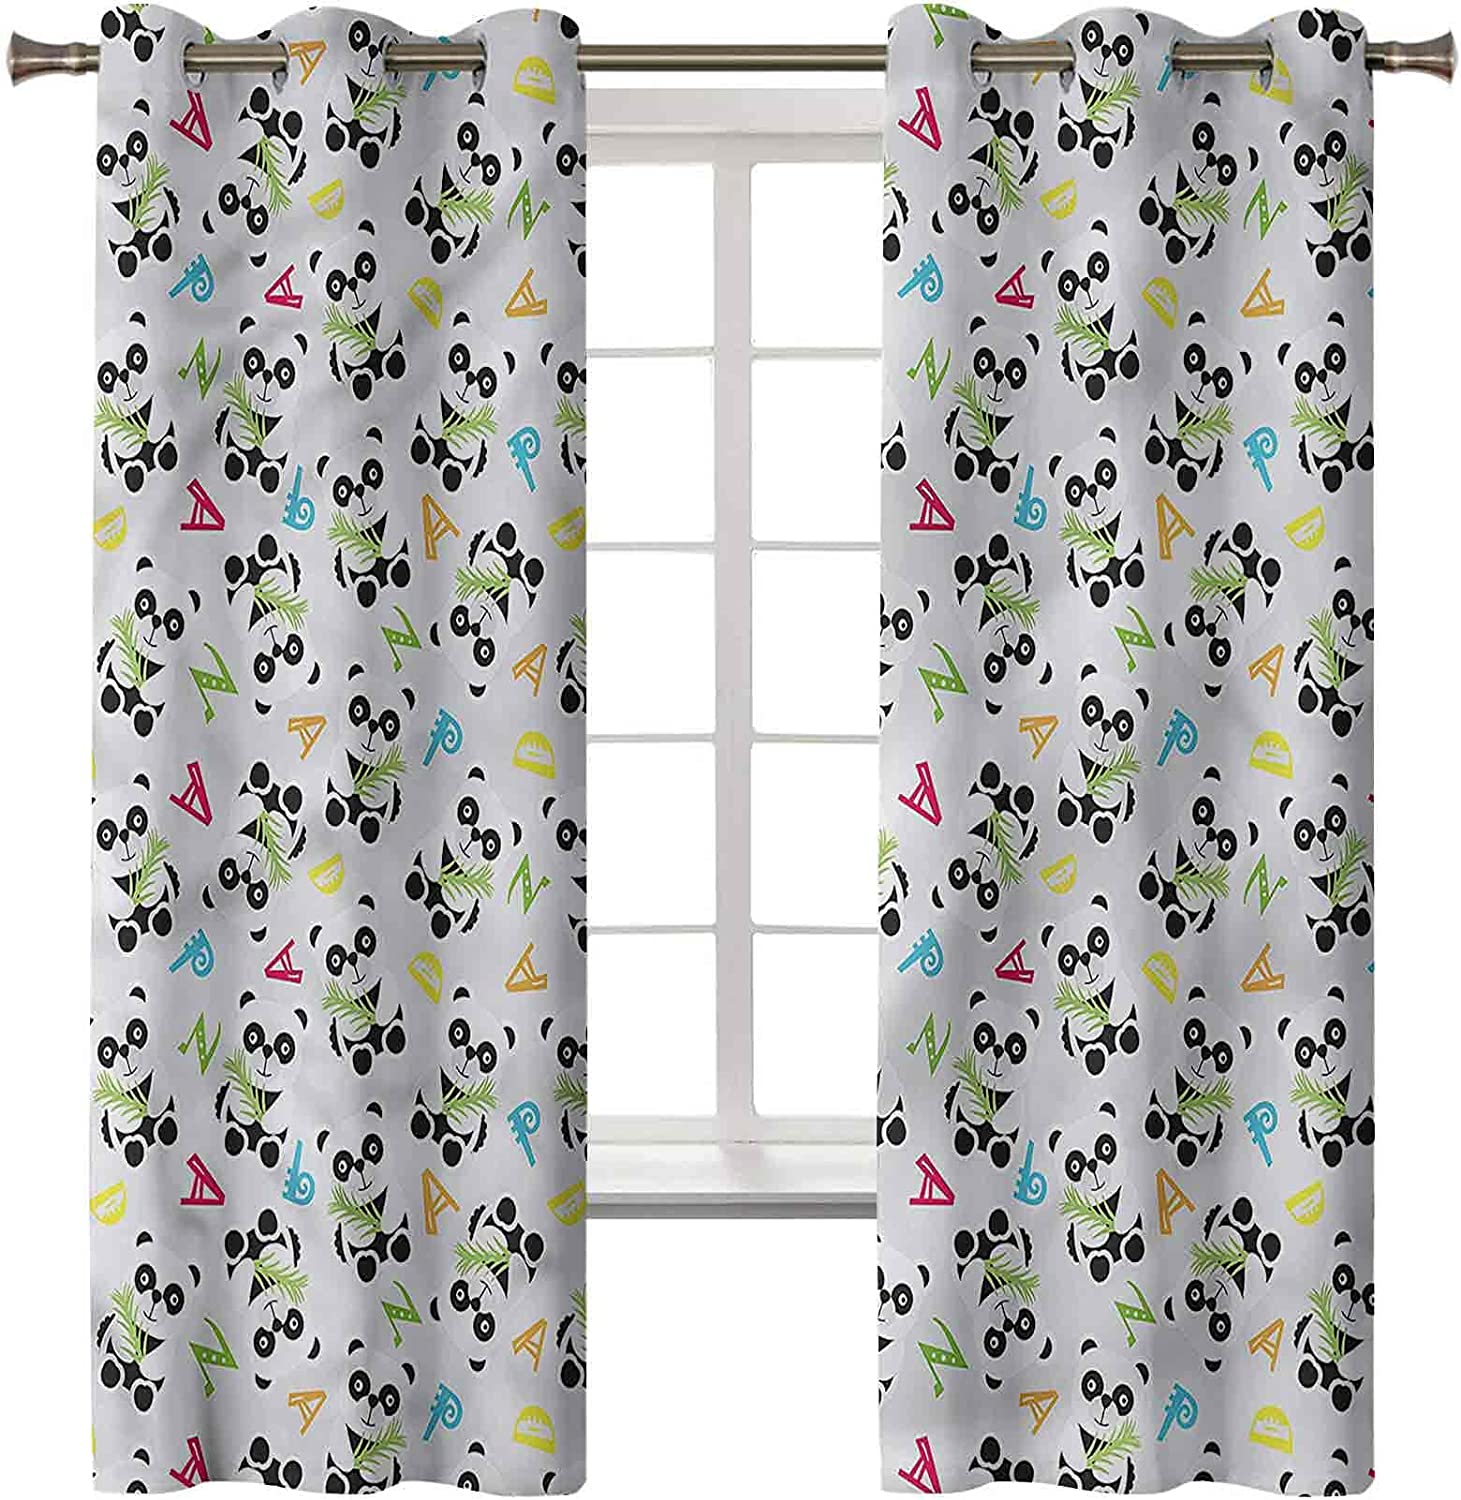 Panda Bedroom Curtains Directly managed store Set of 2 Panels x 42 Rustic Inch Curt Max 62% OFF 84